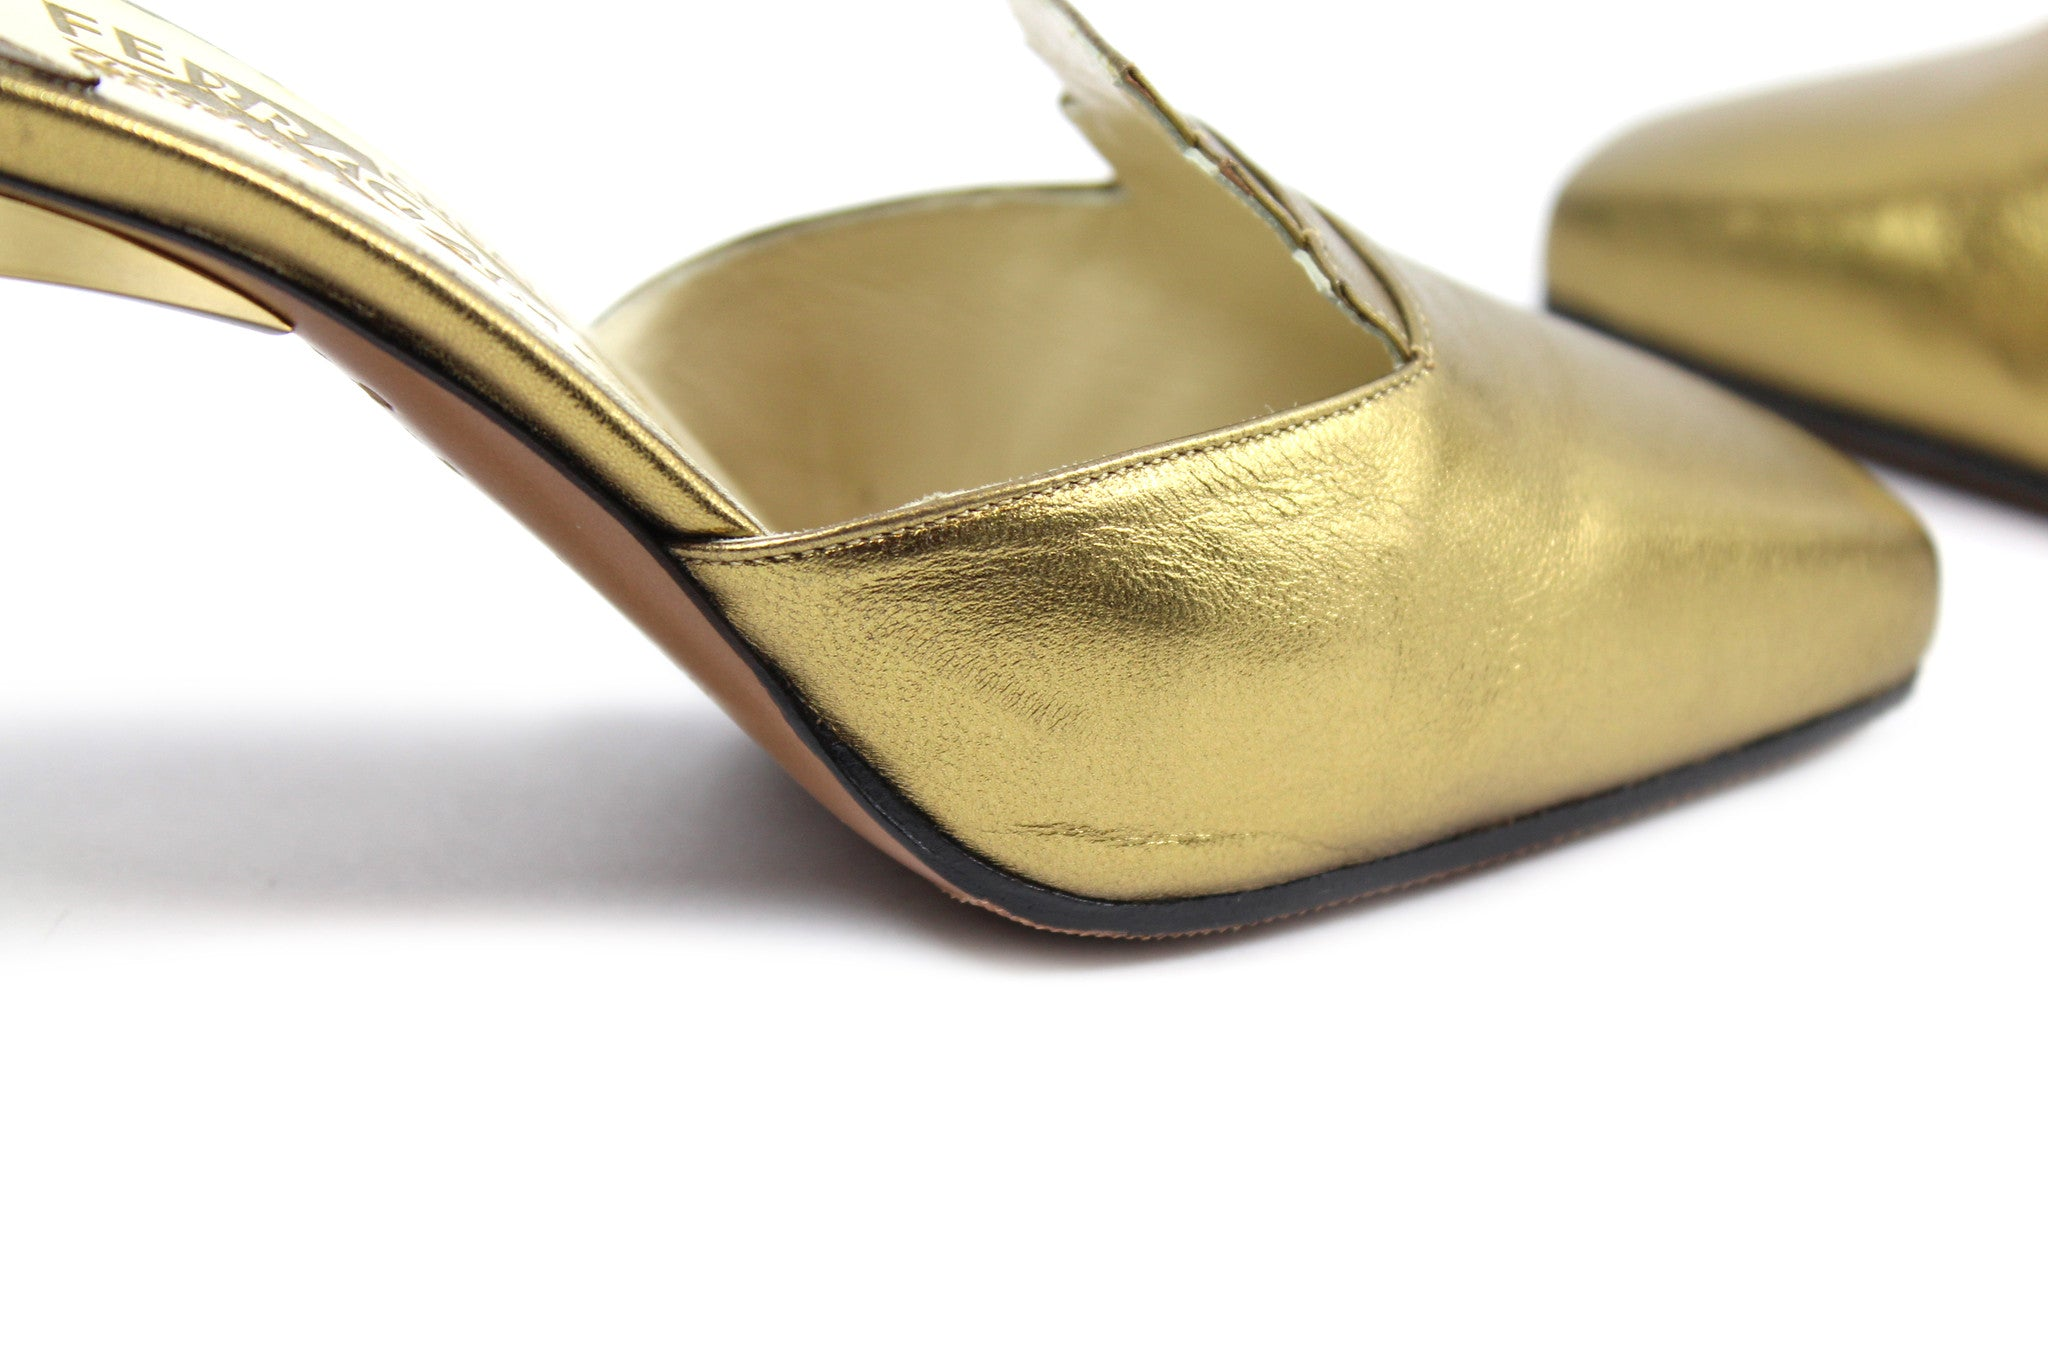 Salvatore Ferragamo 1930s Gold Pyramid Sandals (Size 6) - Encore Consignment - 7